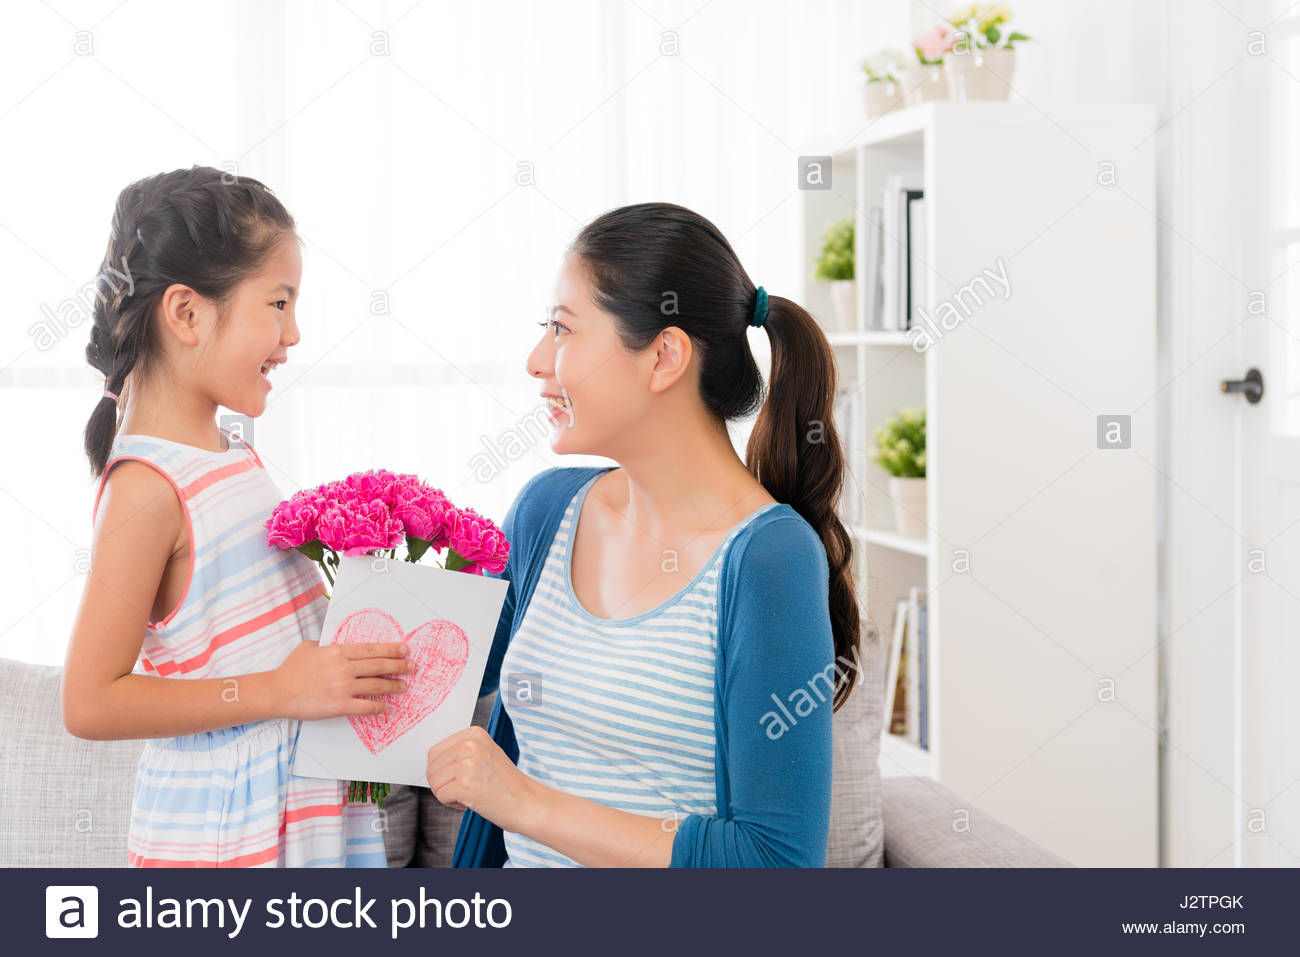 carnation asian girl personals Asian american personals - online dating is the best way to start chatting with an interesting and good looking people register now for free and you will see it this is especially true for the majority of chinese people using dating sites to solicit their ideal life partner.